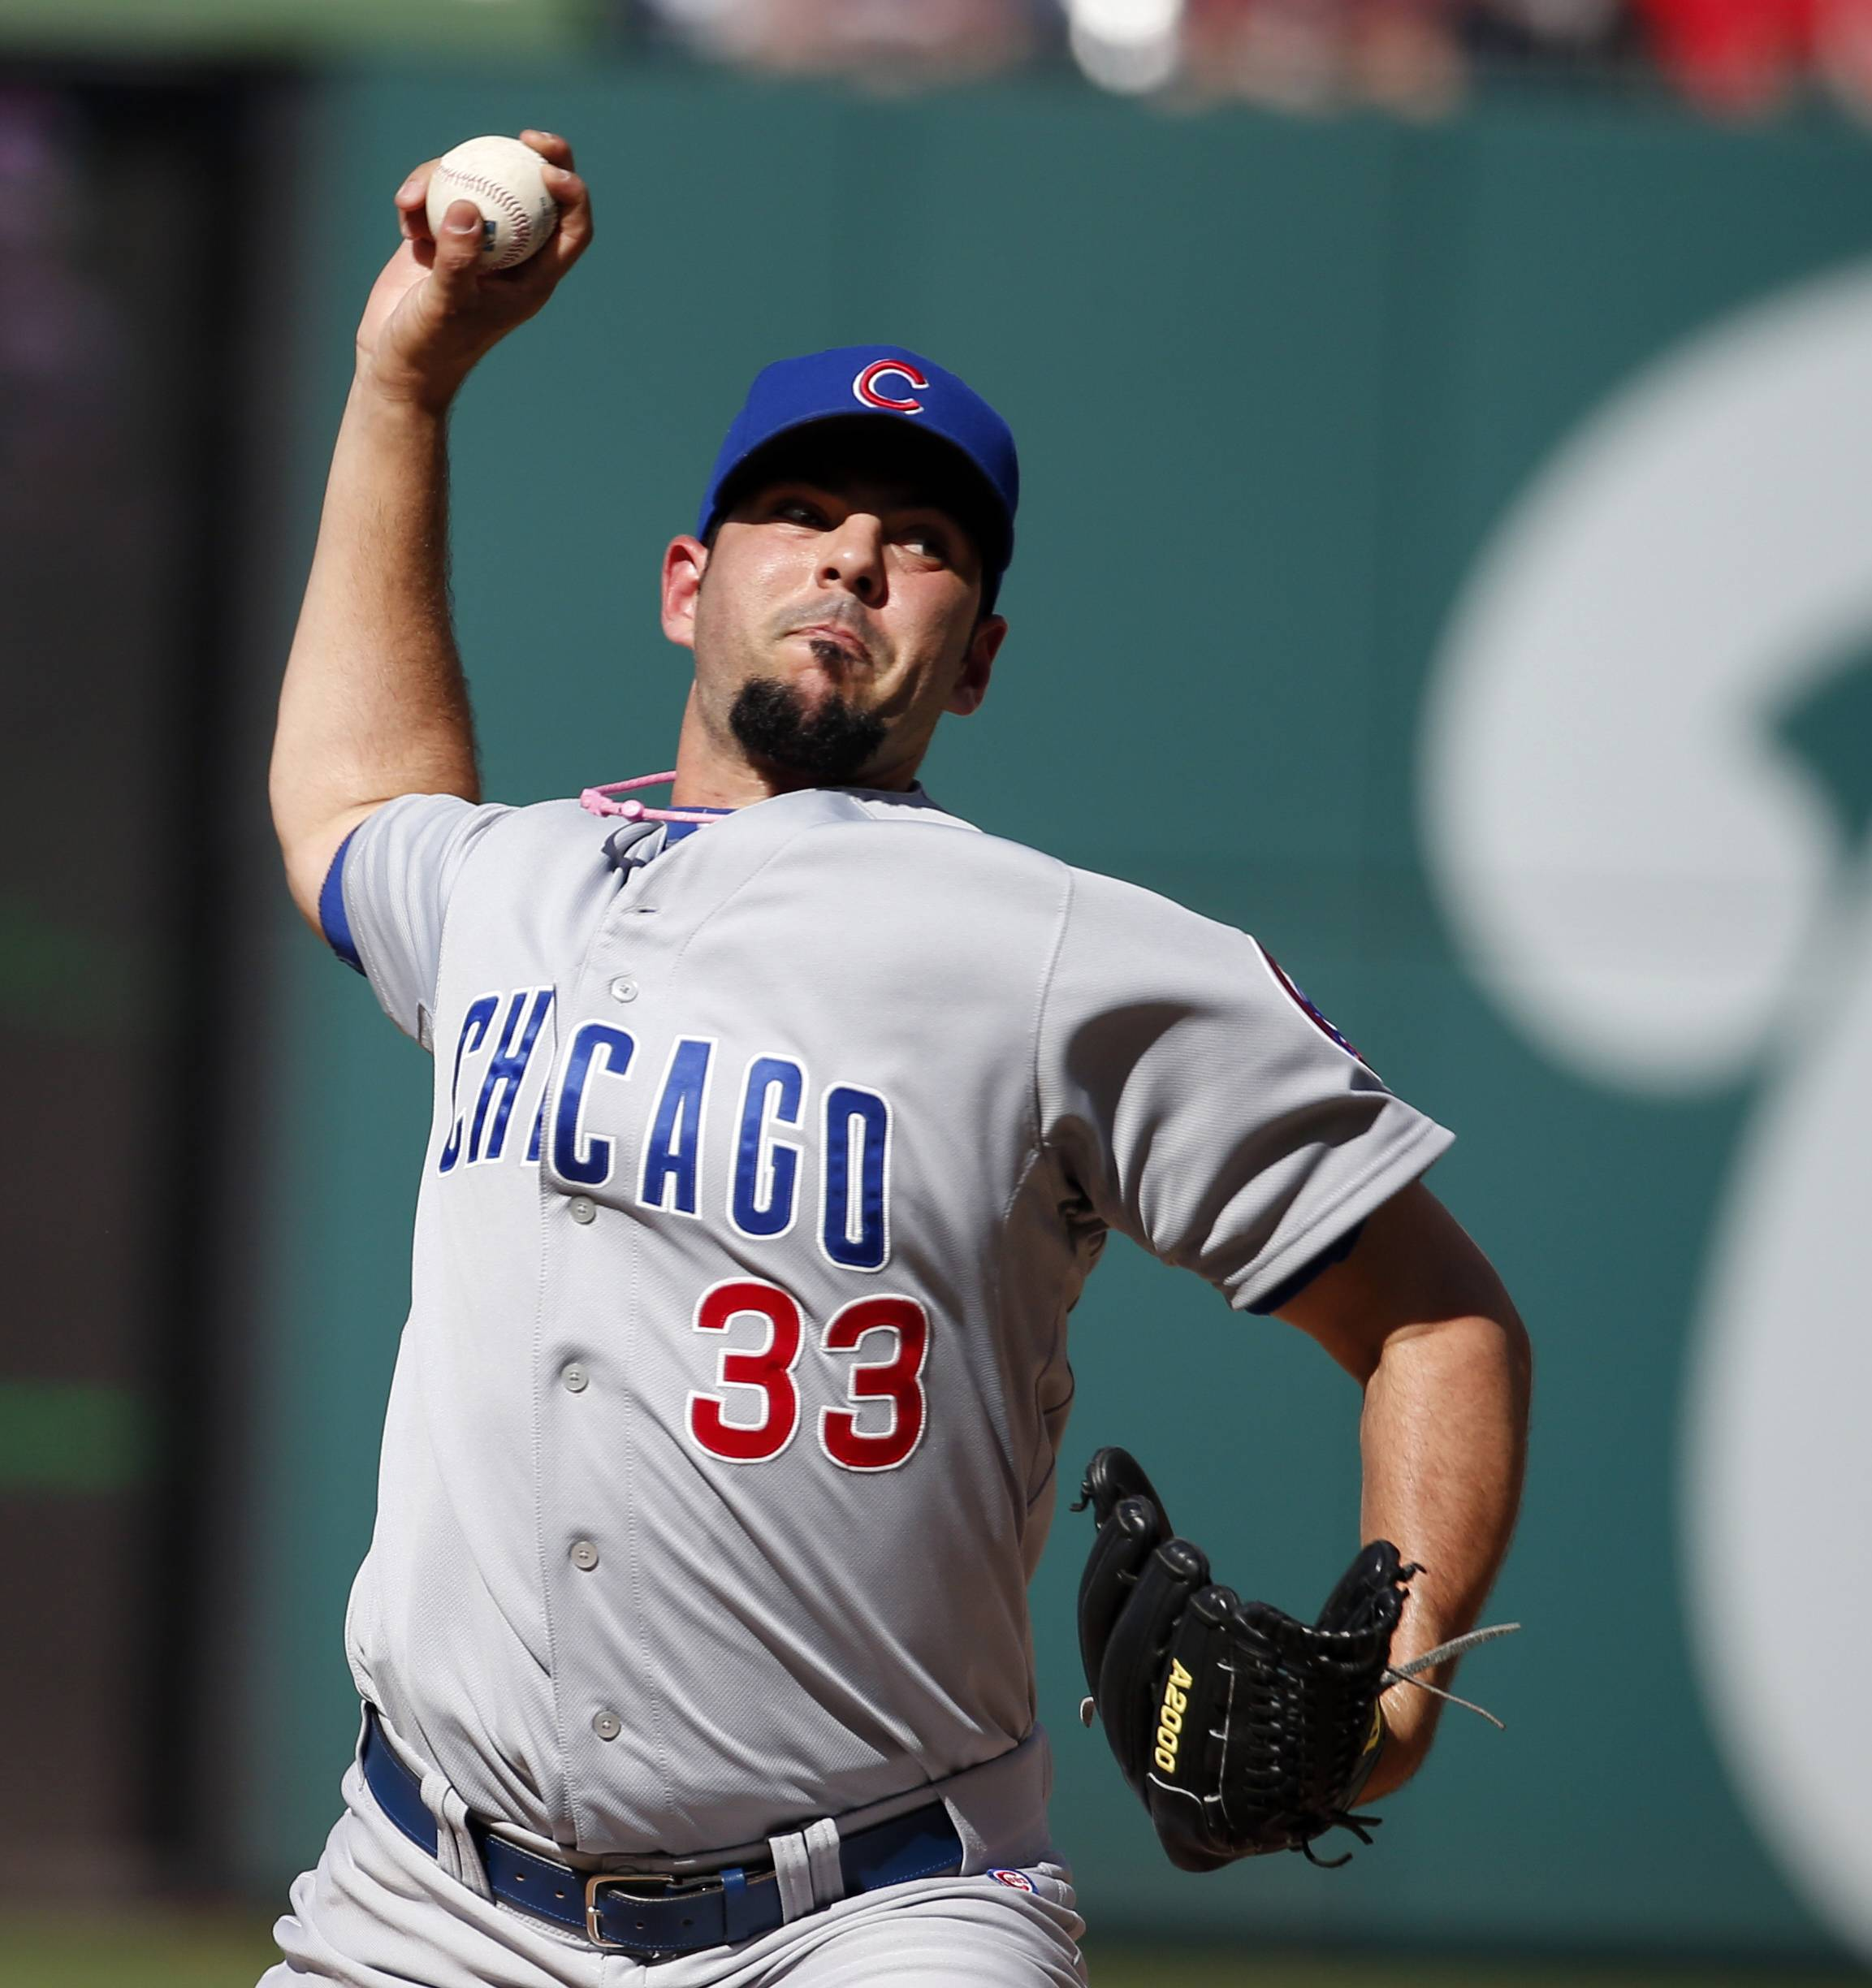 Chicago Cubs pitcher Carlos Villanueva was forced to start Saturday's game against the Washington Nationals after the team traded Jeff Samardzija, the scheduled starter. The Cubs lost 13-0.